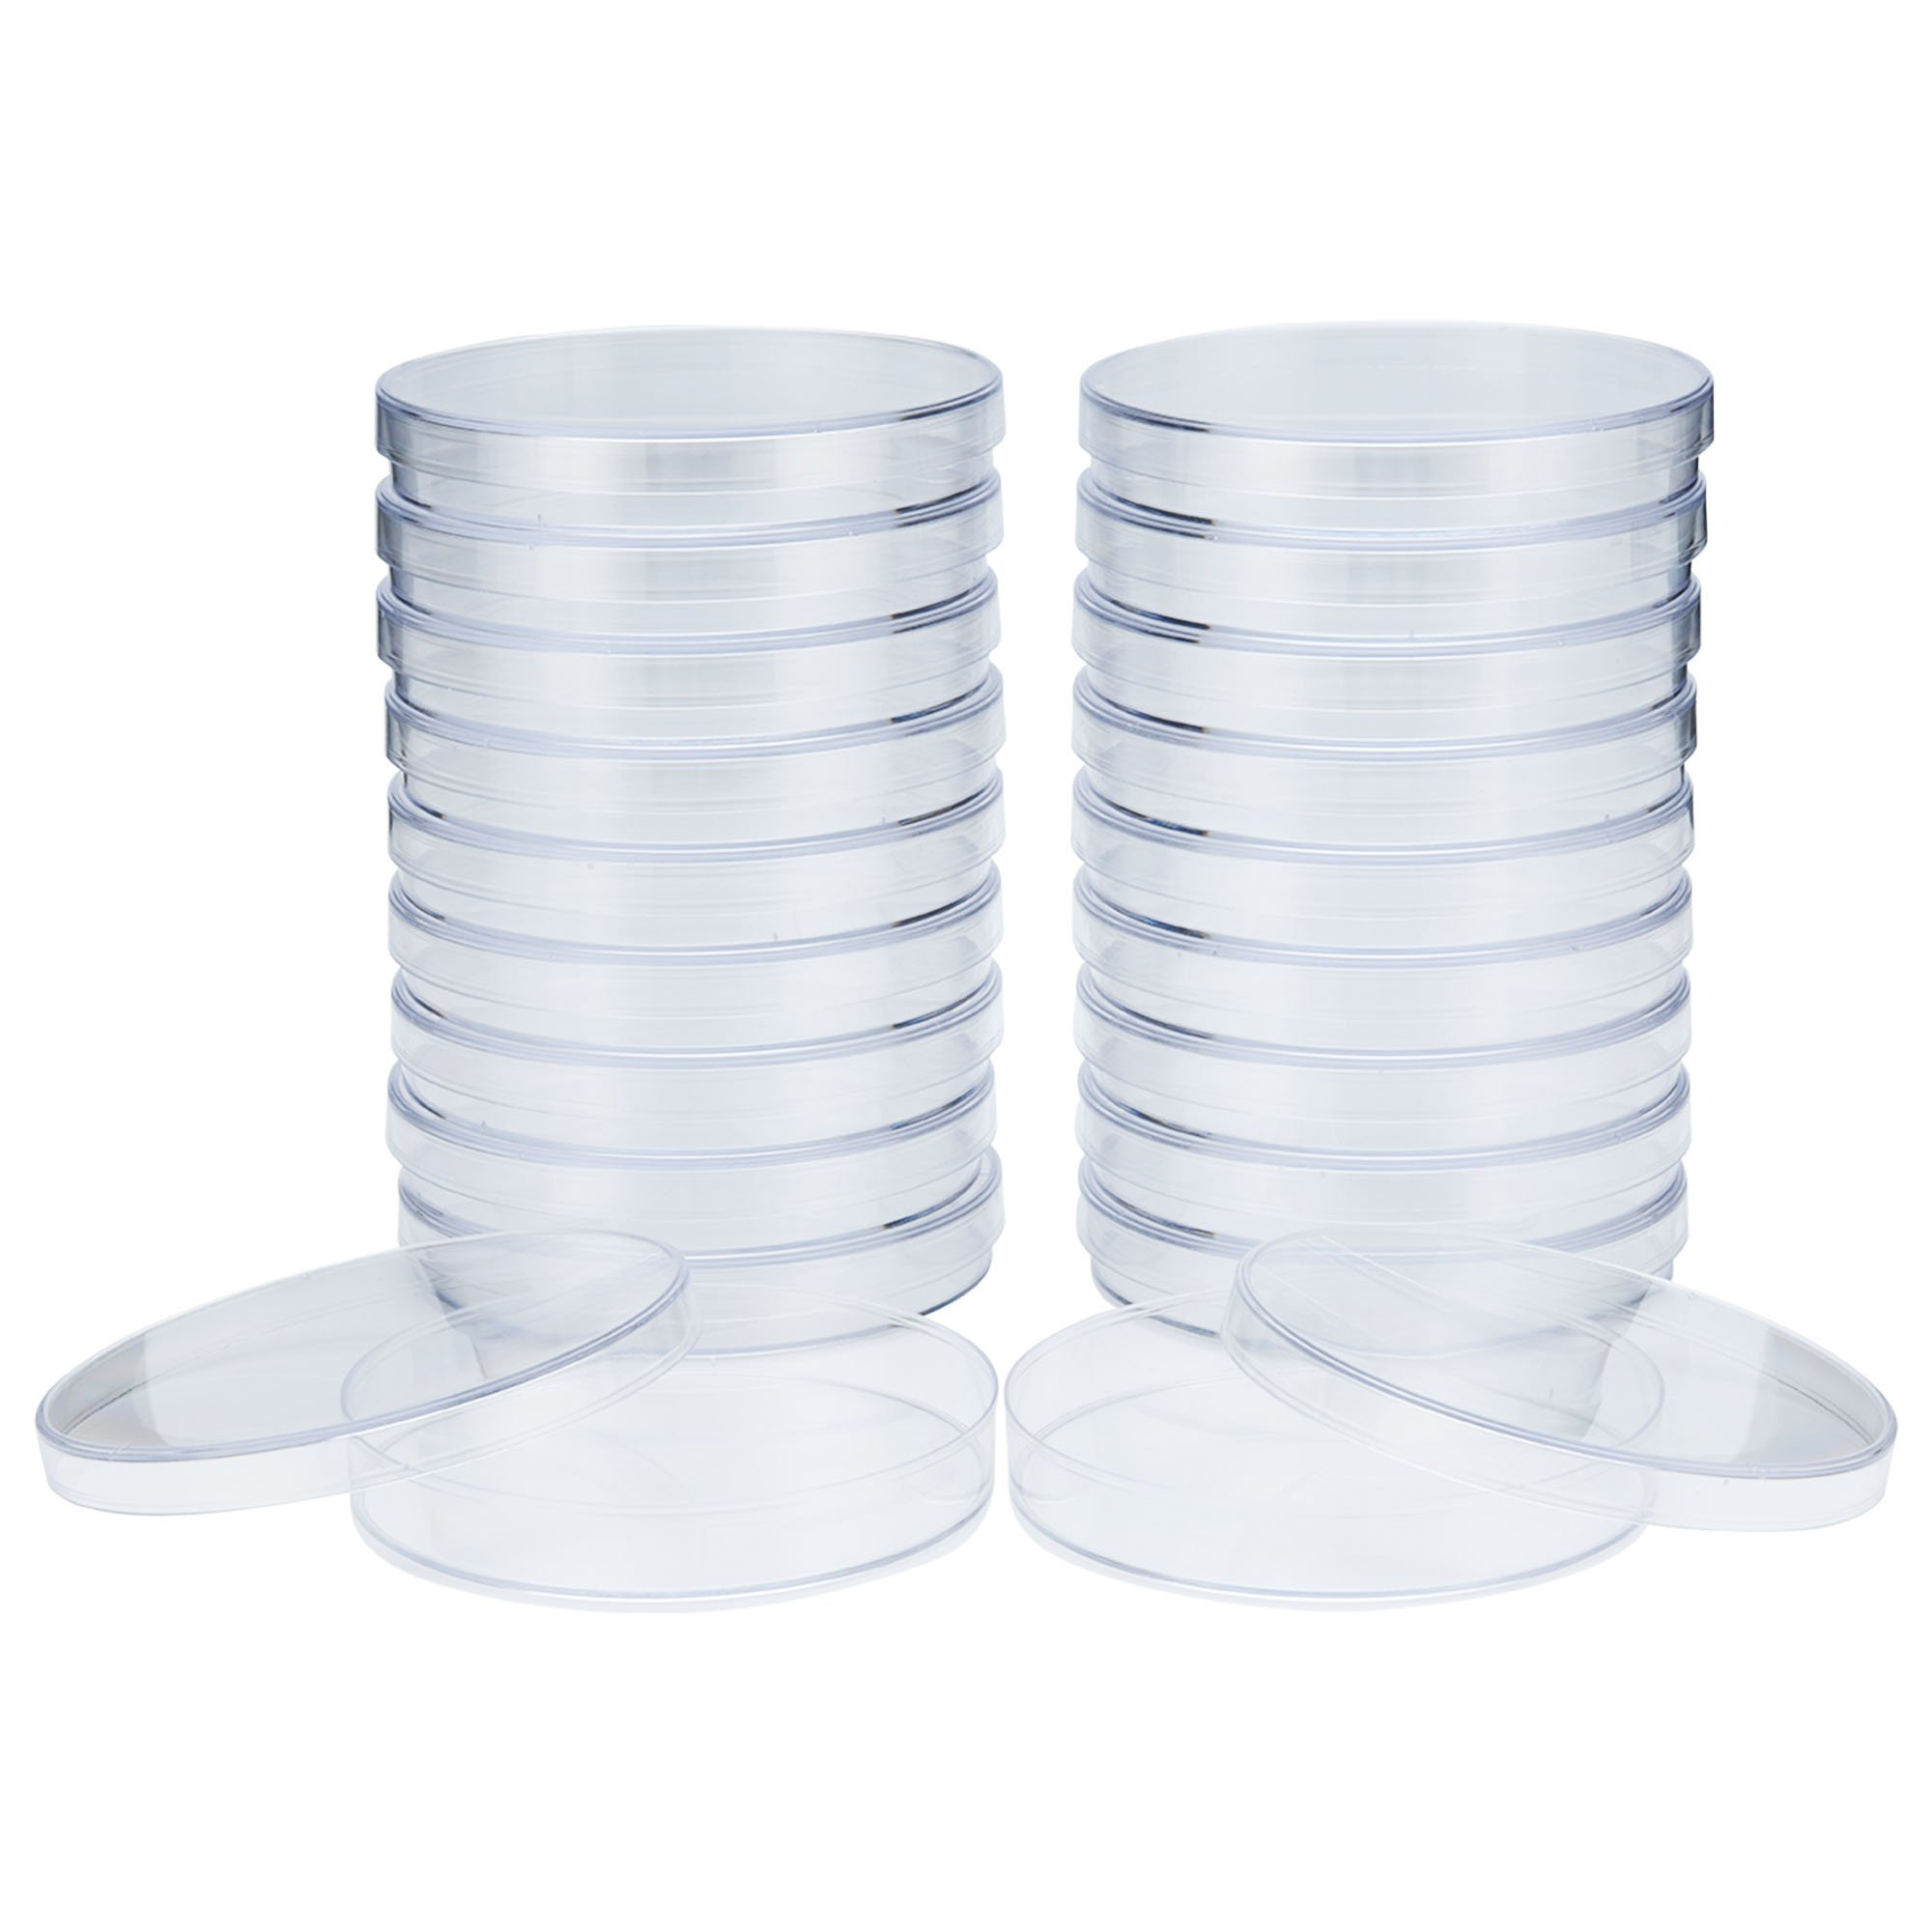 Petri Dishes (92.5mm x 15mm) EO Sterile, Vented, Made with Professional Grade Polystyrene - 2 Sets x 10 (20 Count) by Mile High Online by MHO Containers